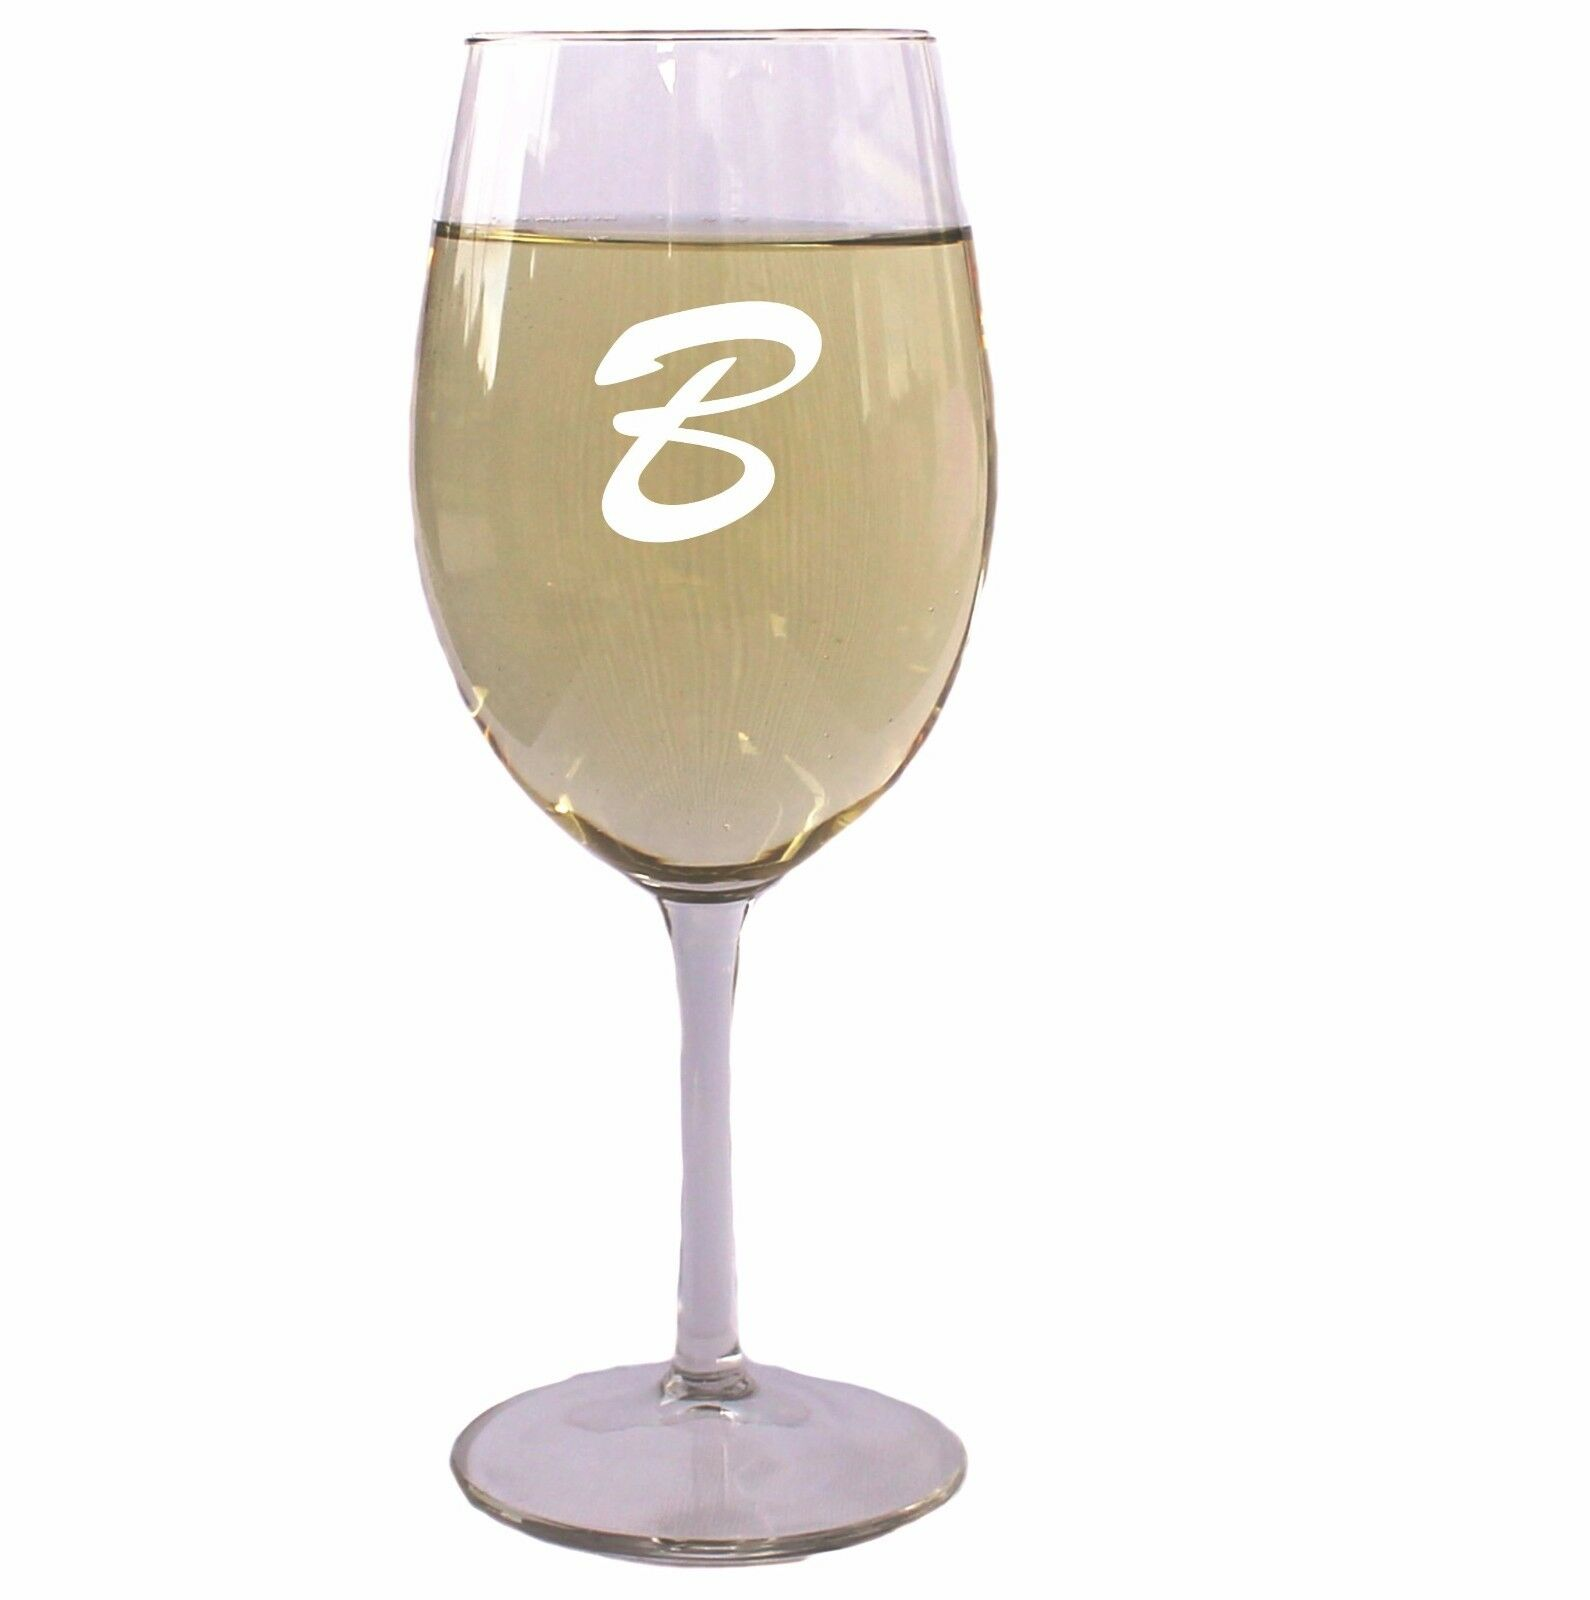 Etched Wine Glasses Wedding Gifts : ... 20 oz. Wine Glass With Initial - Custom Etched Gift For Wedding eBay